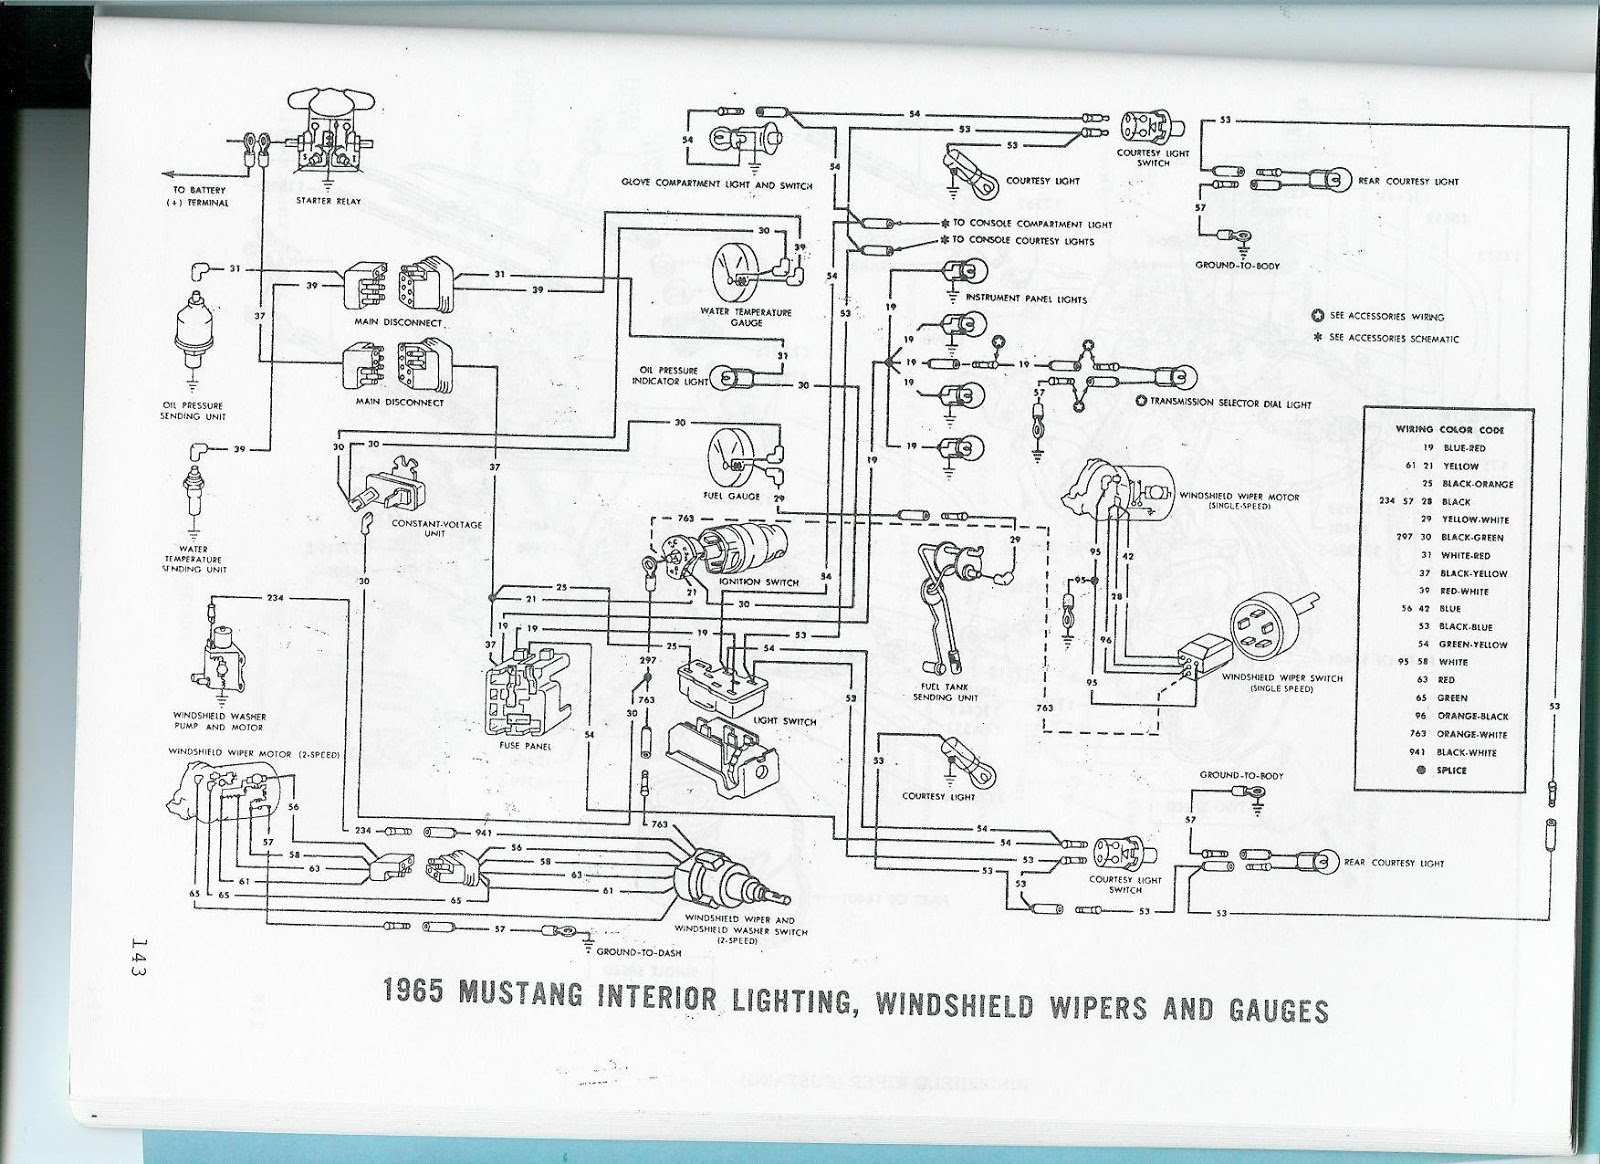 1966 ford mustang v8 wiring diagram wiring diagram libraries 1967 nova wiring diagram 1967 gto wiring diagram [ 1600 x 1164 Pixel ]